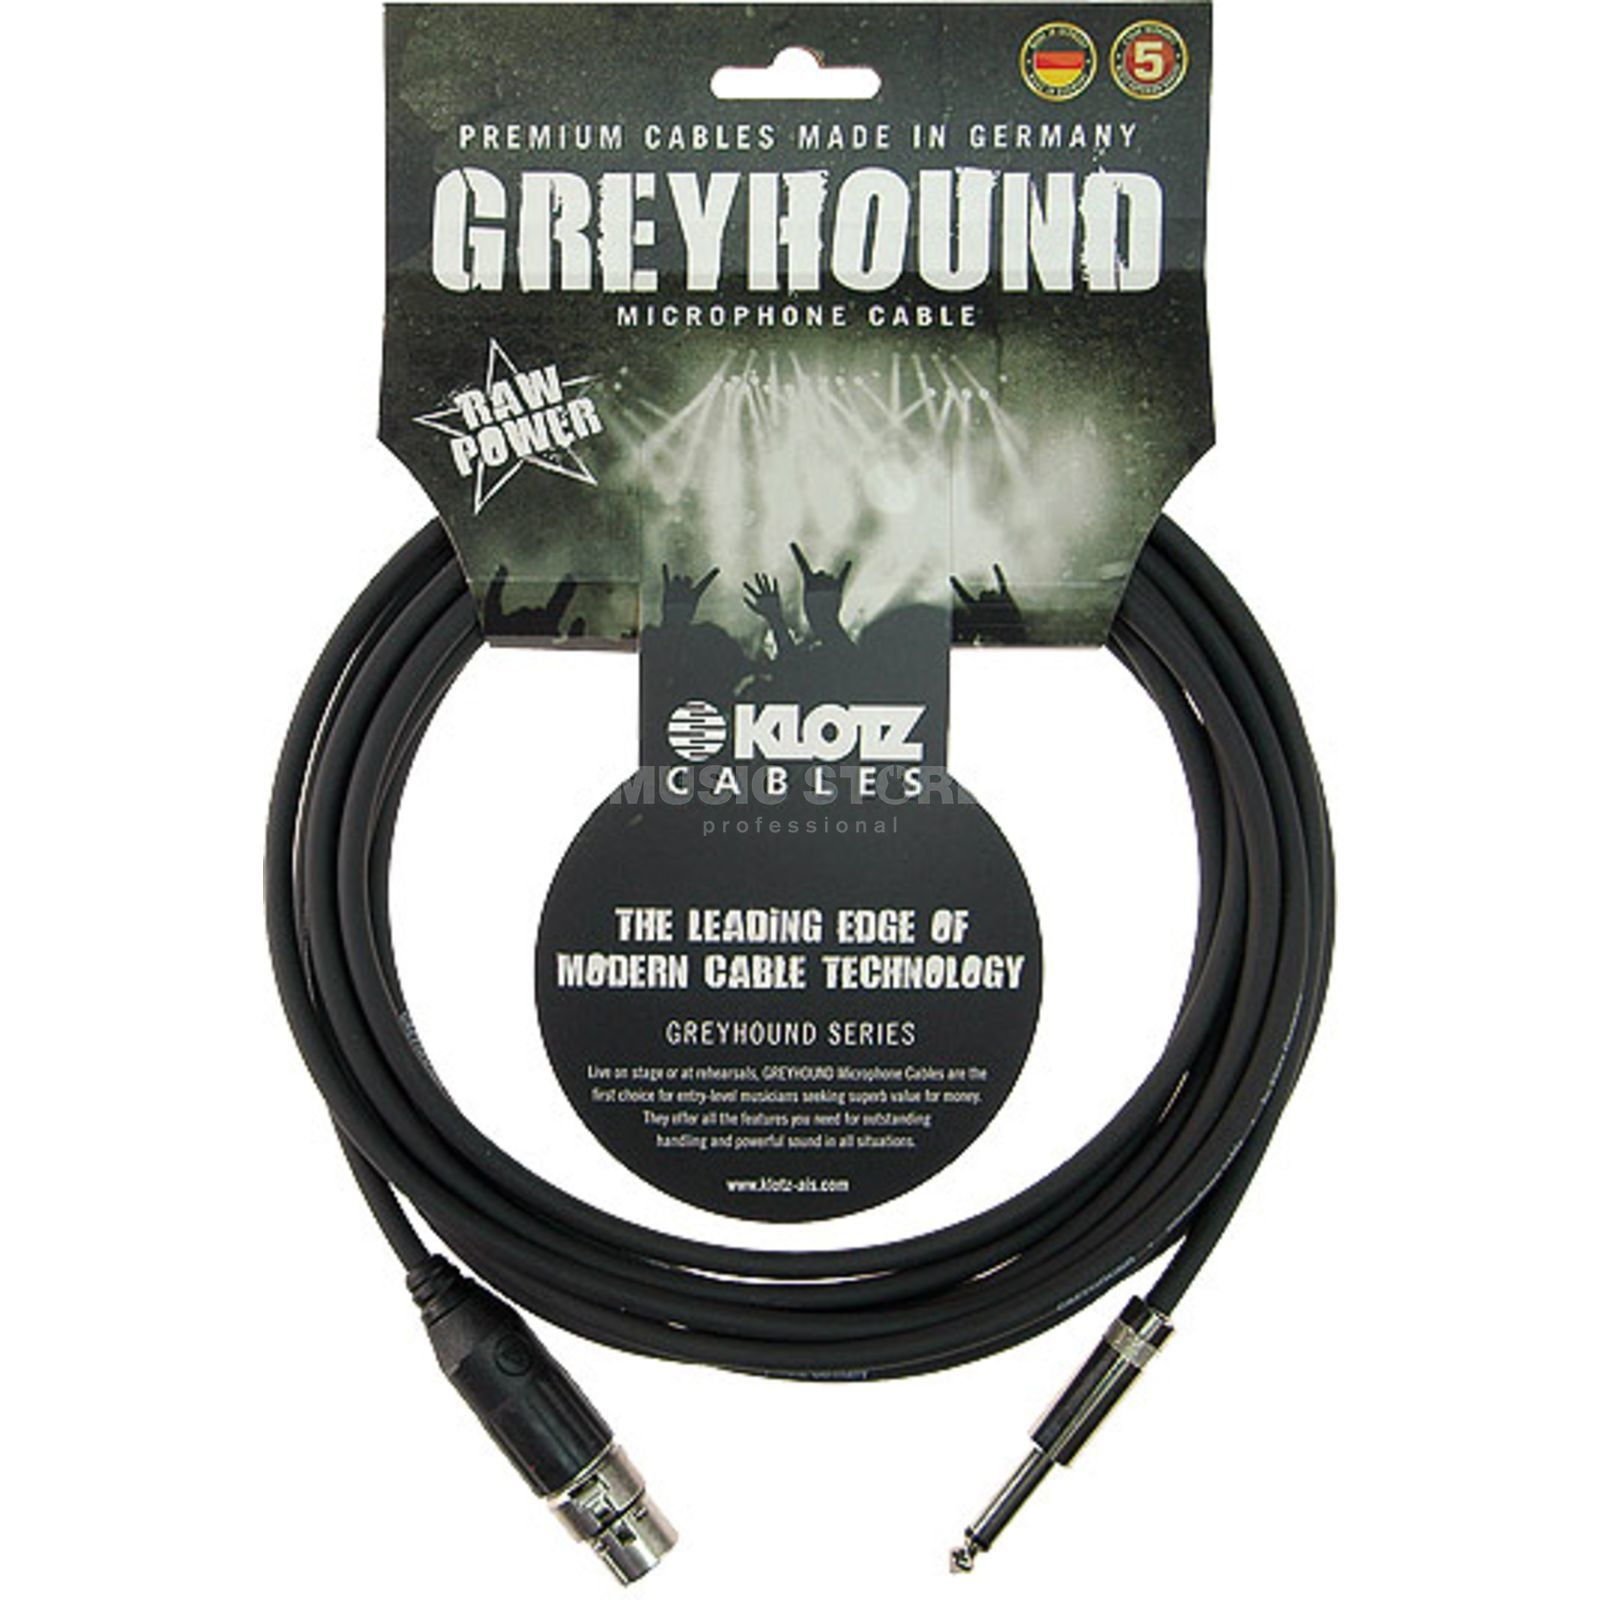 Klotz GRSXP050 Greyhound Mikrofonkabel XLR female - Klinke 5m Switchcraft Produktbild